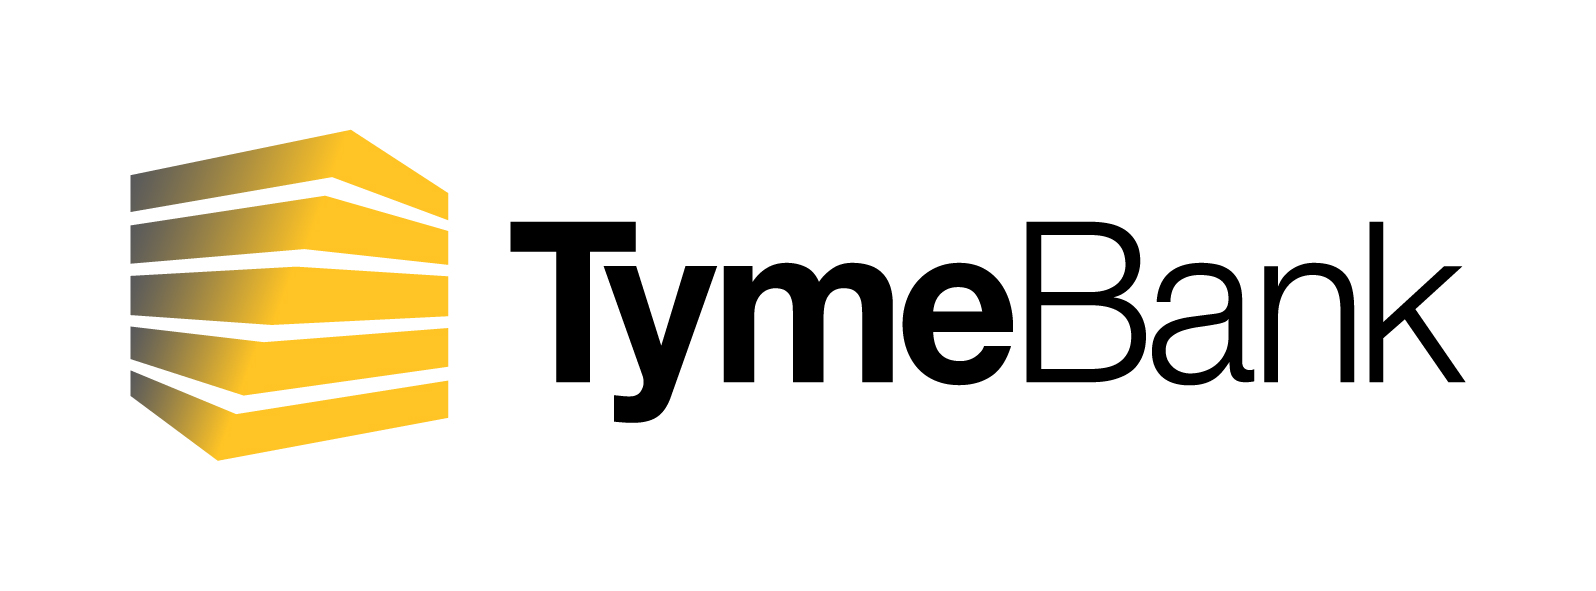 Tyme Bank receives R200mn investment boost from Ethos AI Fund